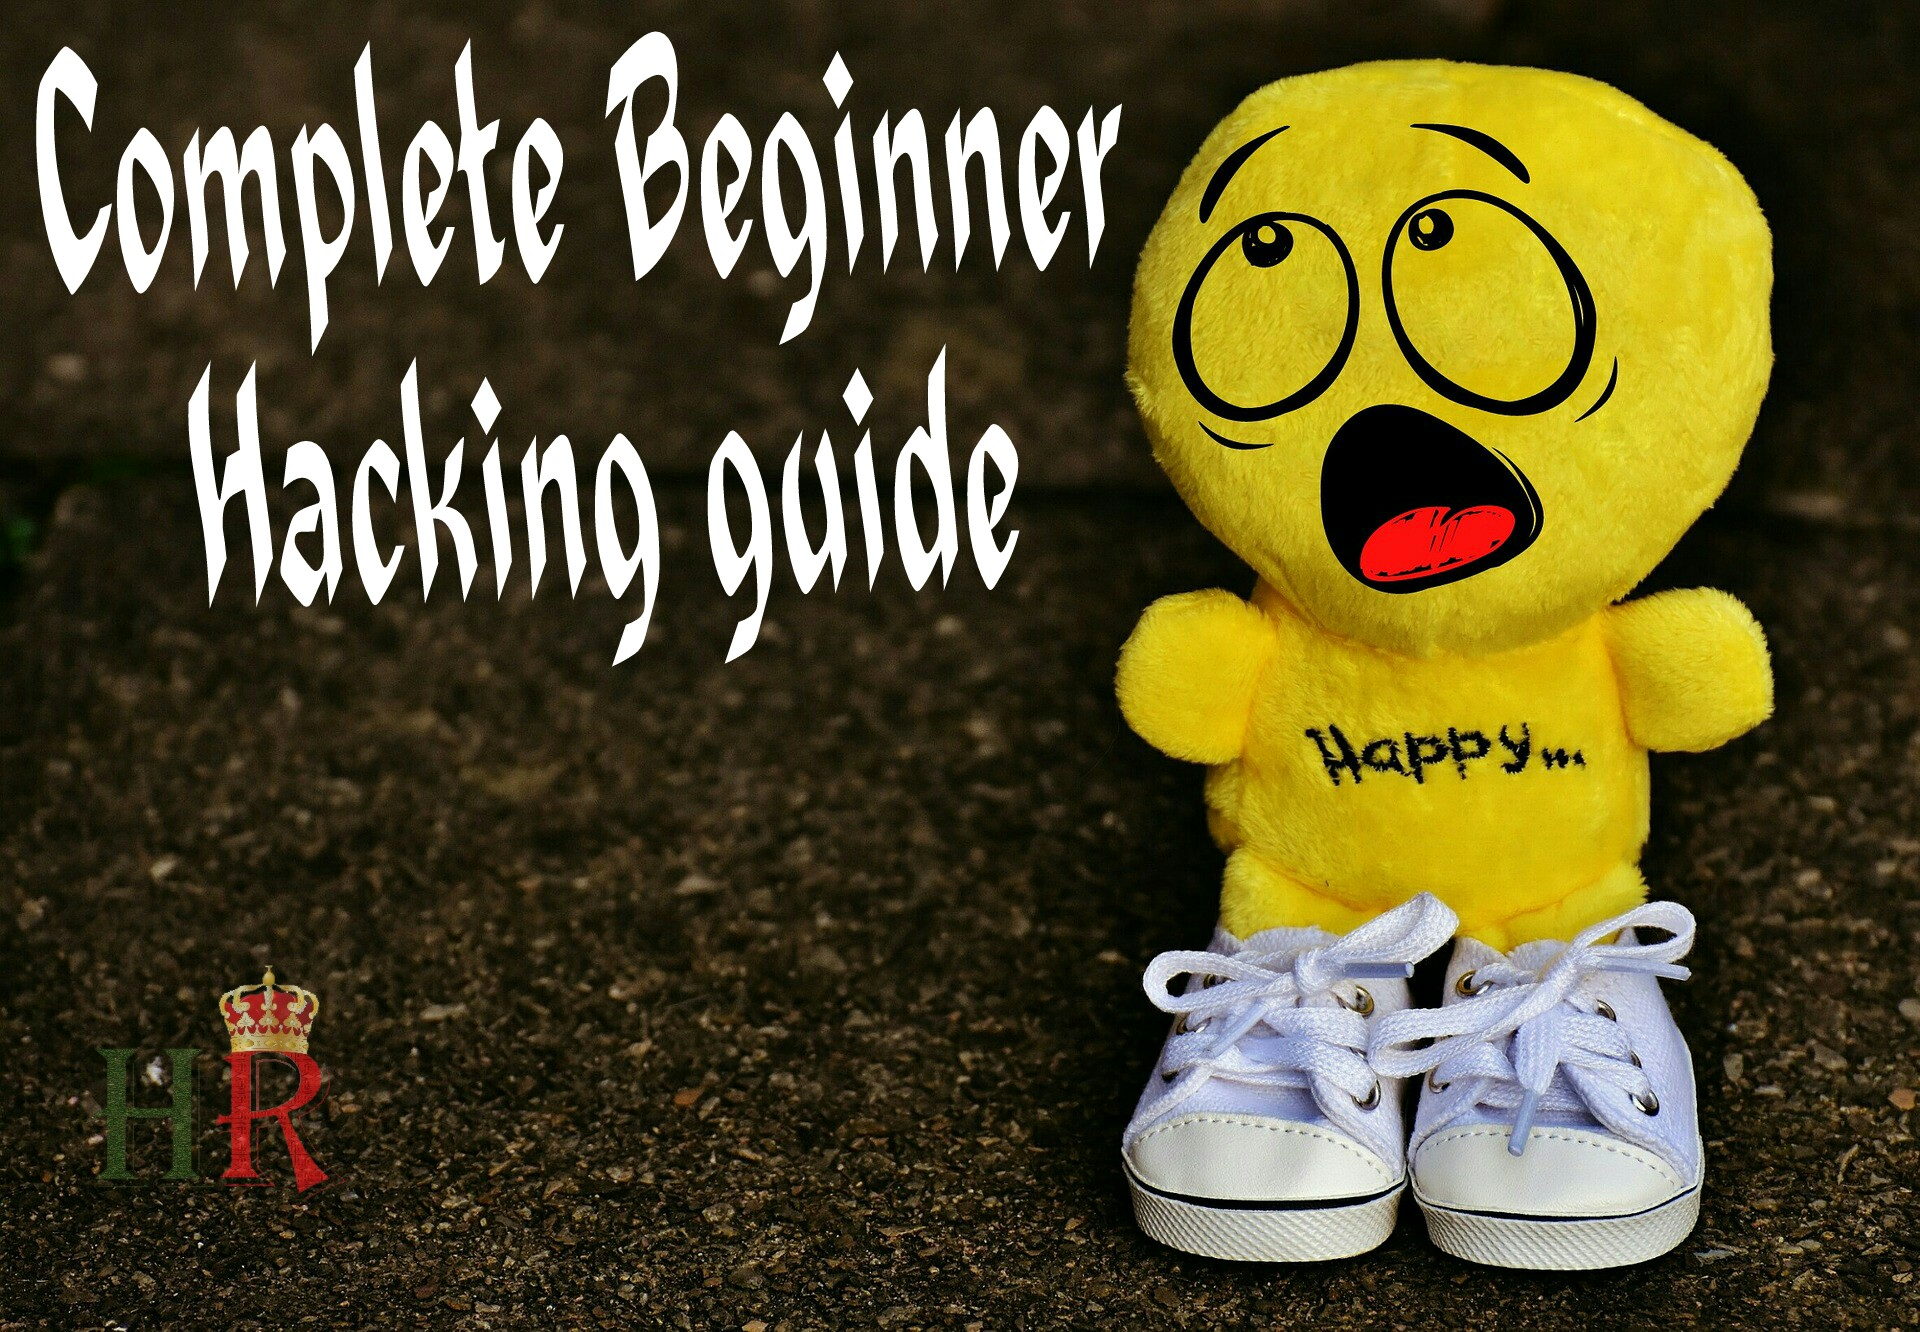 The COMPLETE beginners guide to hacking